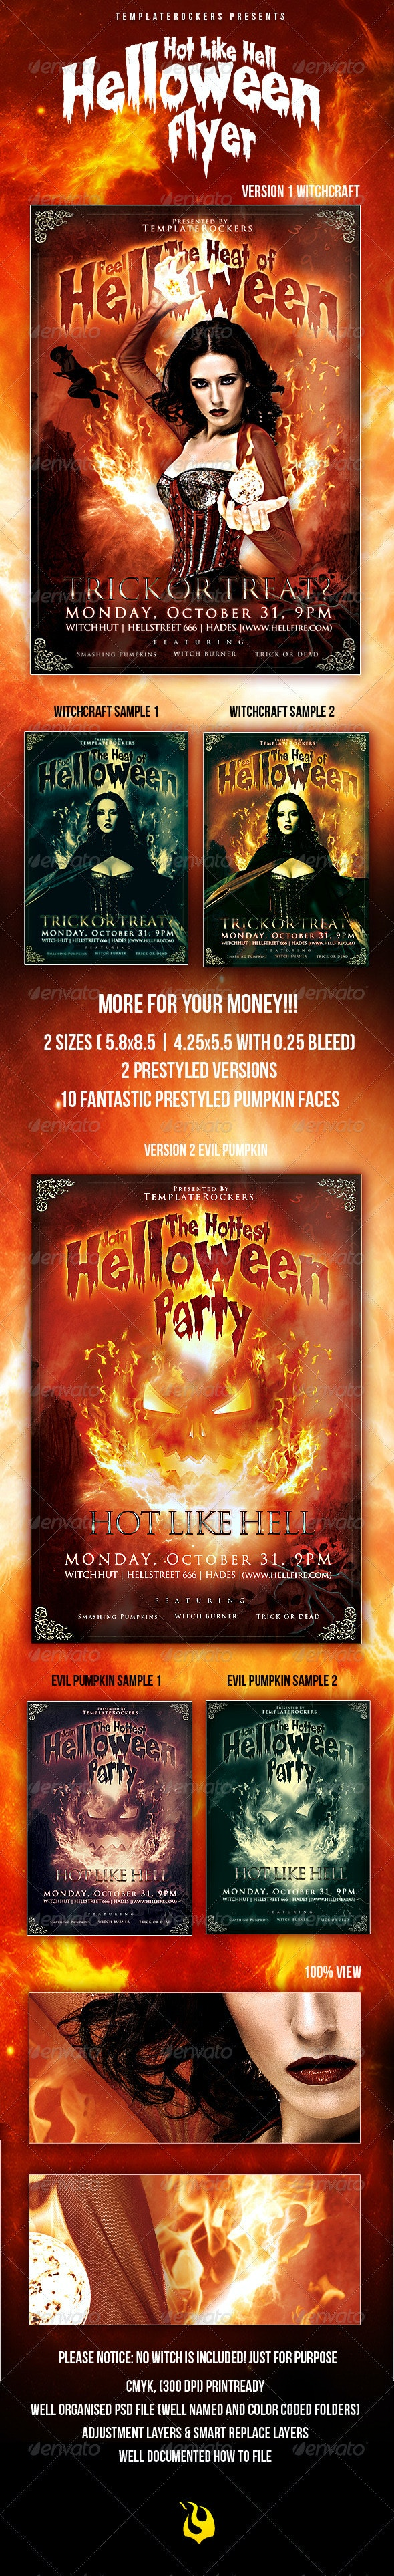 Hot Halloween Flyer - Clubs & Parties Events